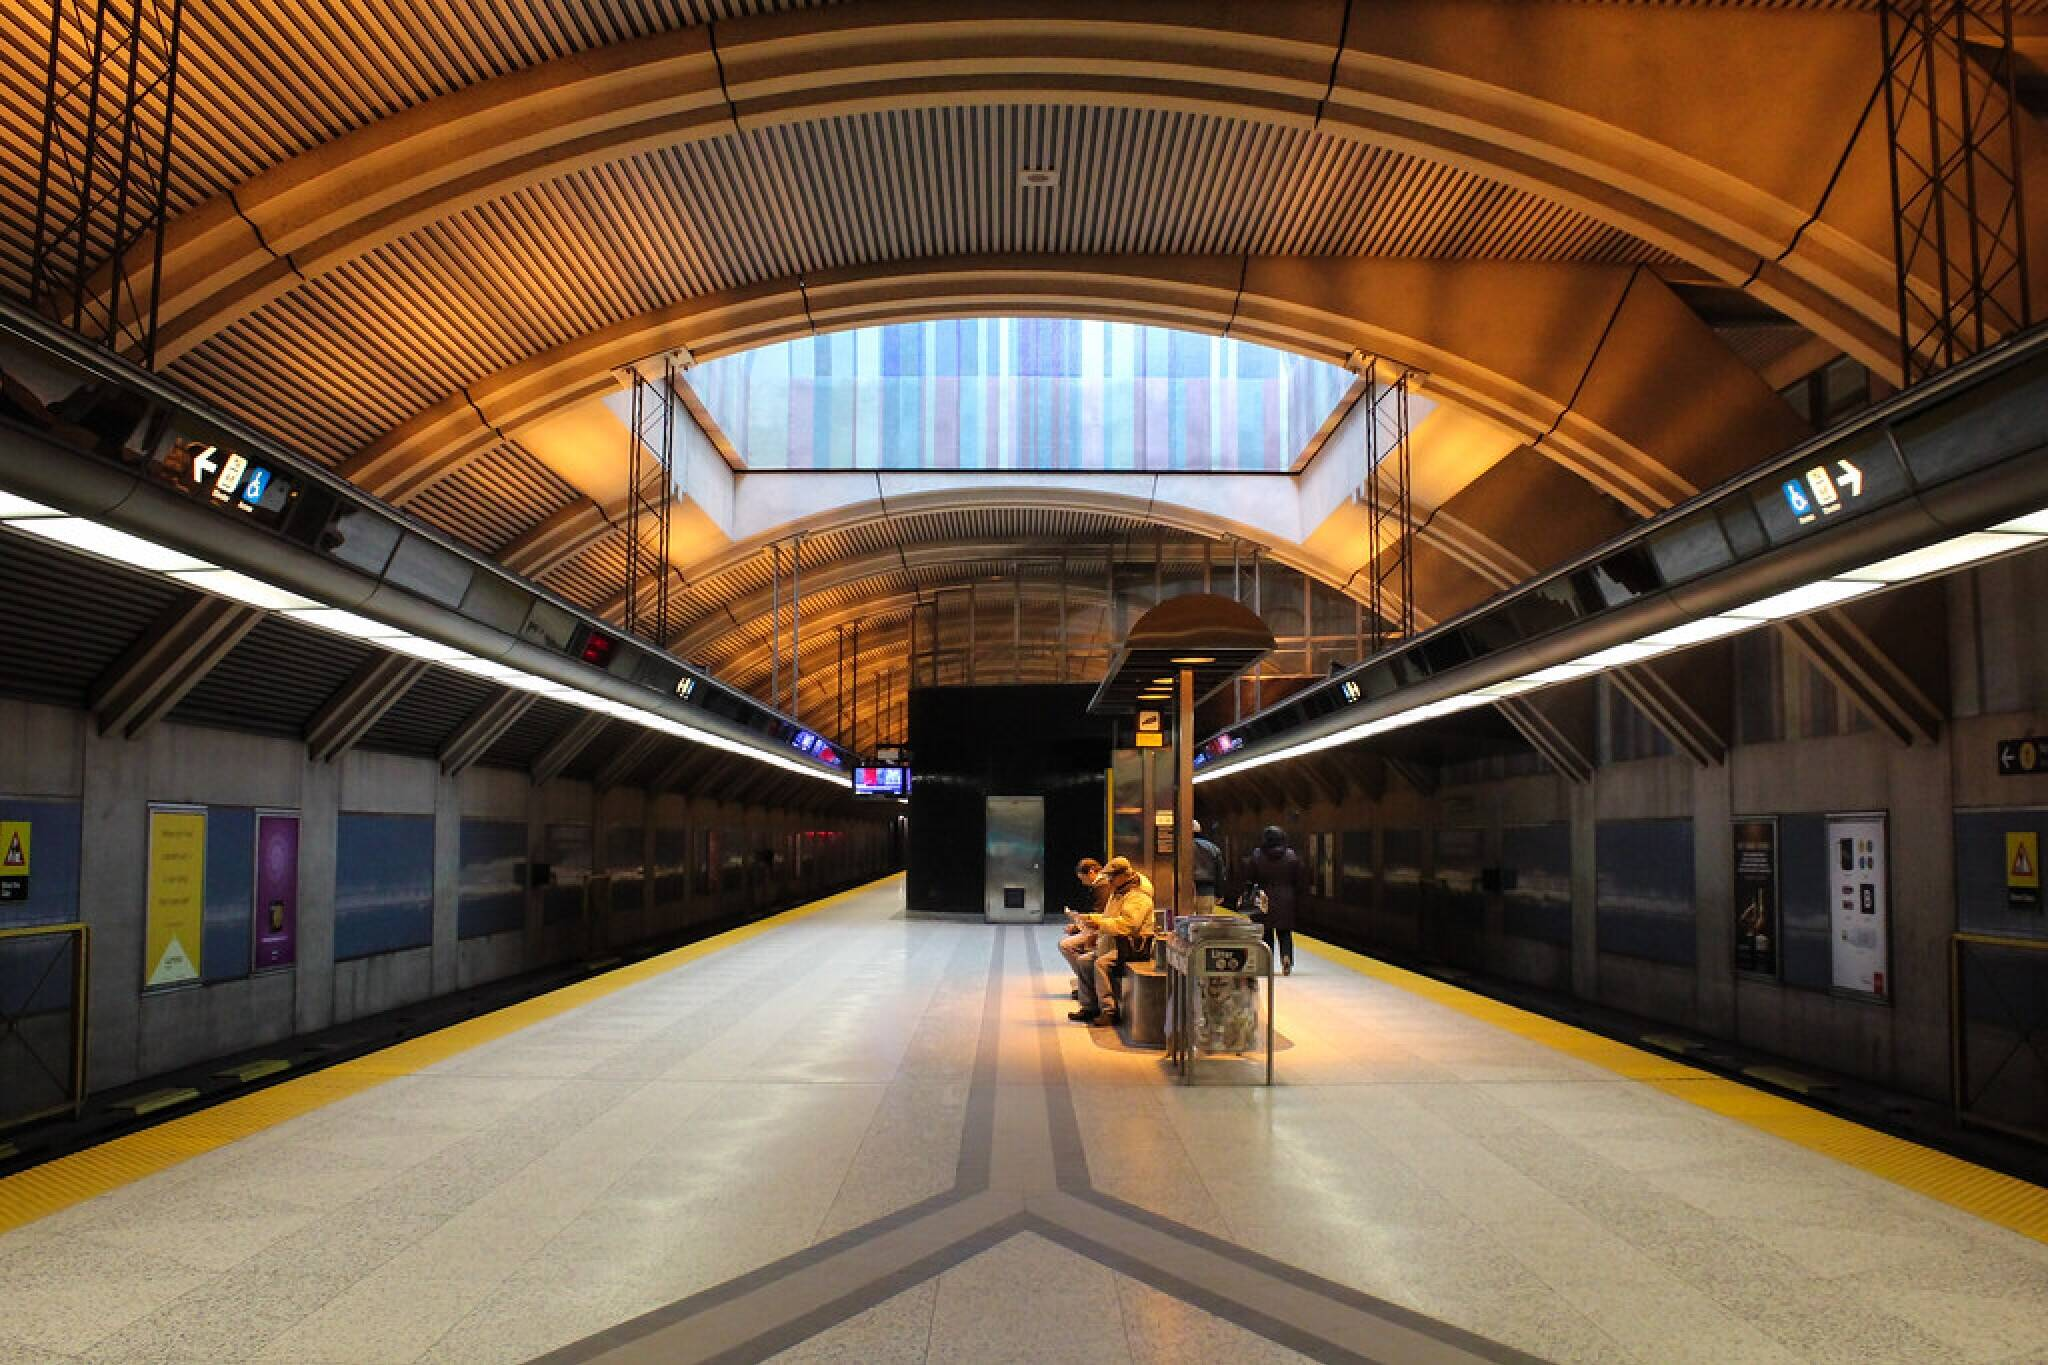 sheppard subway west extension